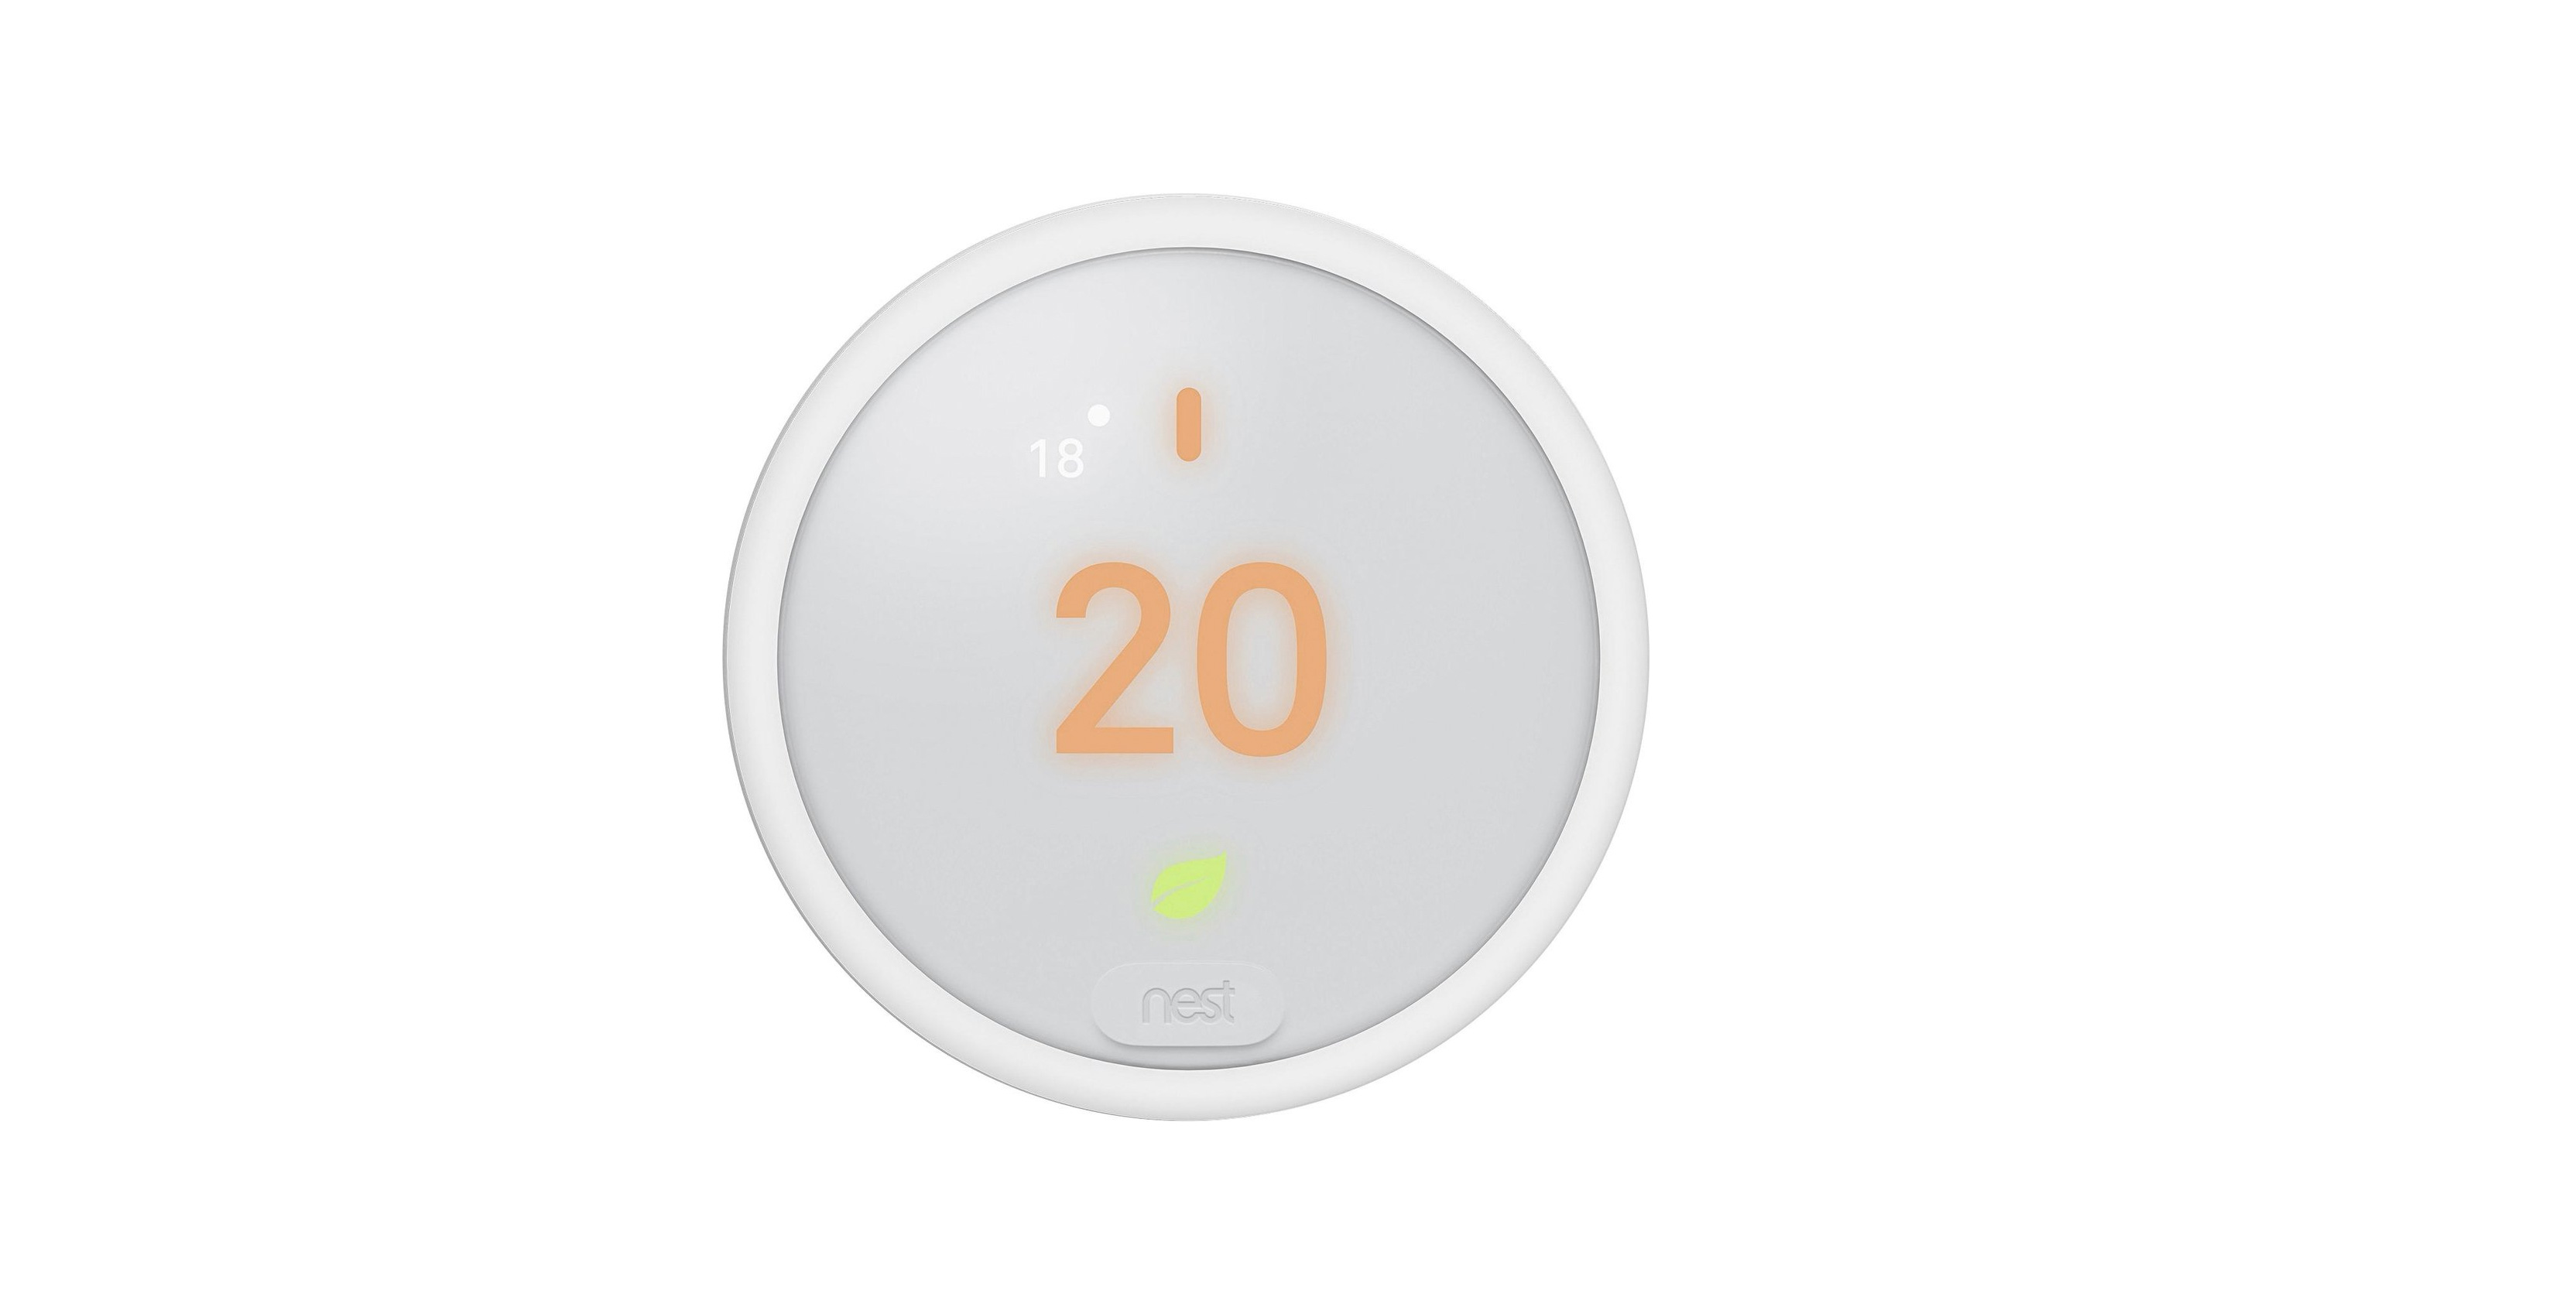 An image showing the leaked Nest thermostat